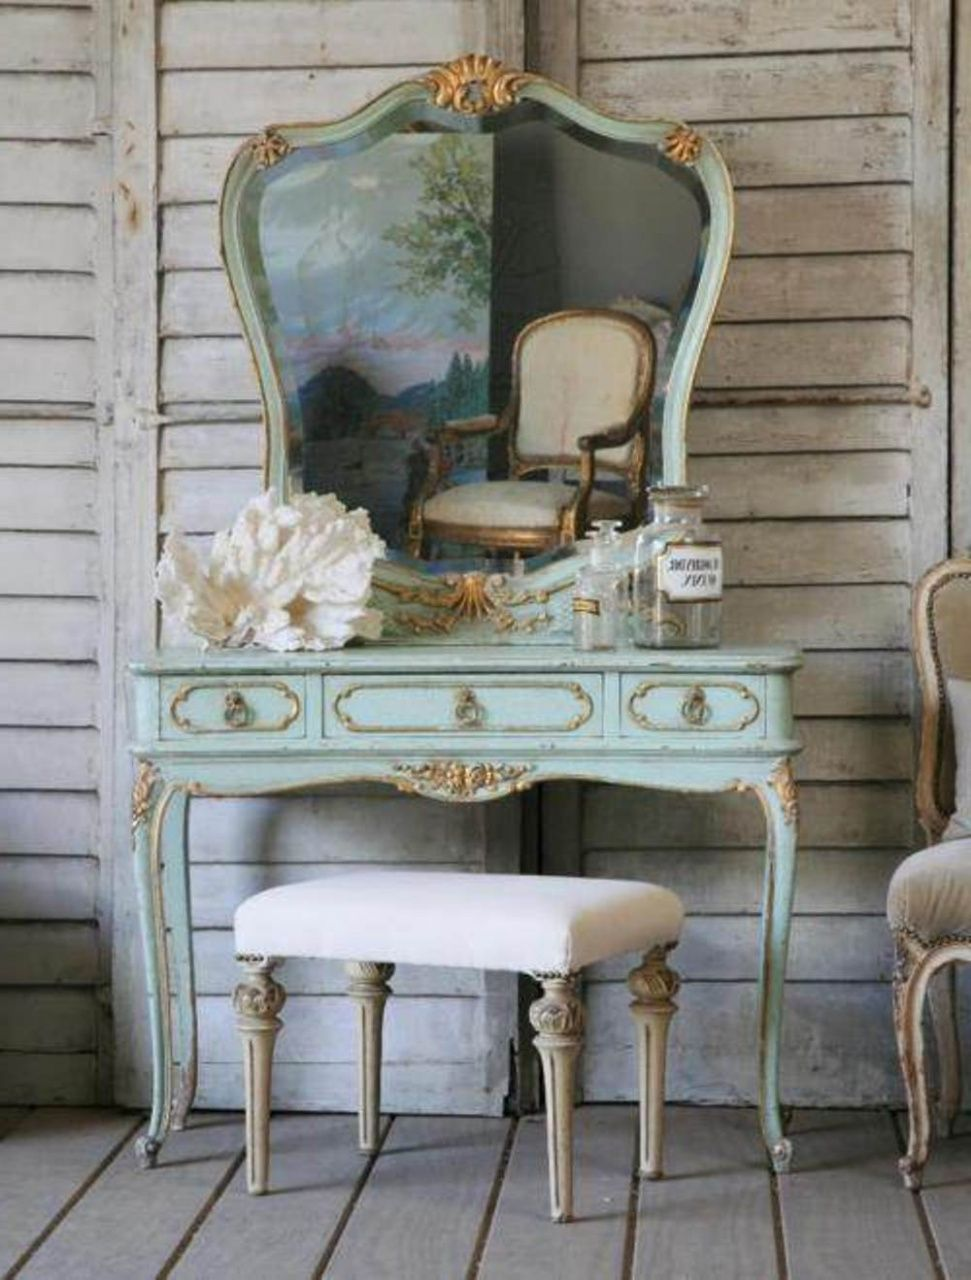 Pin by Annora on the sofa interior Vanity table vintage